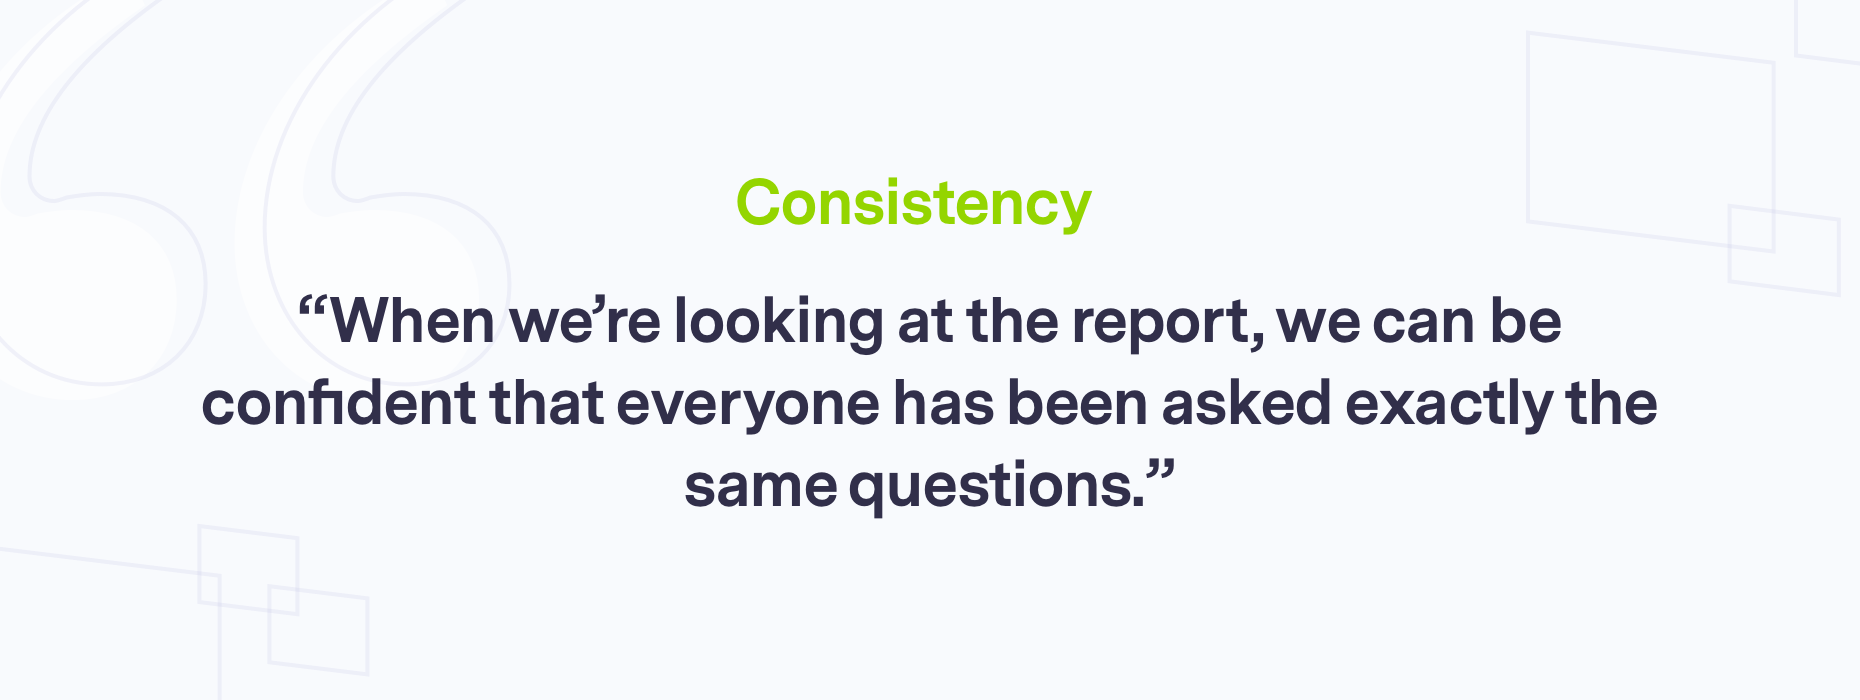 Branded quote on consistency